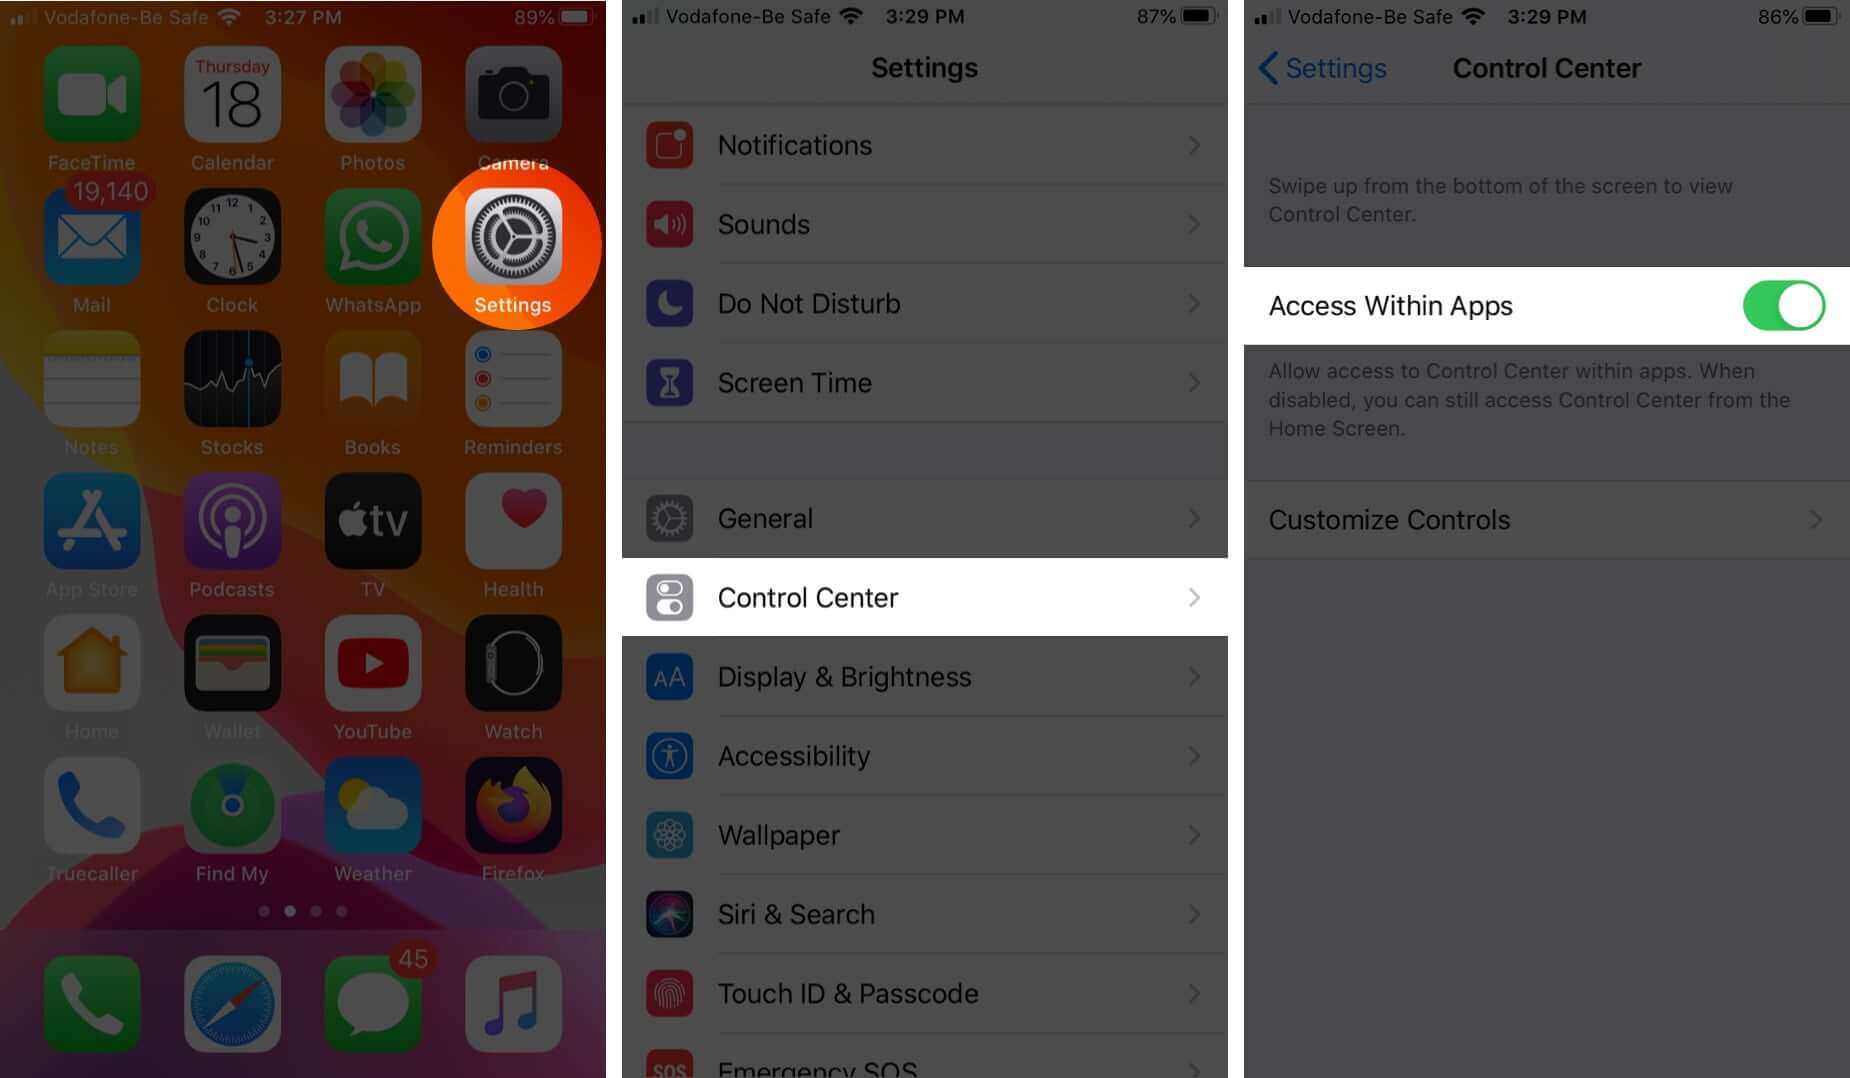 open settings tap on control cente and turn on access within apps